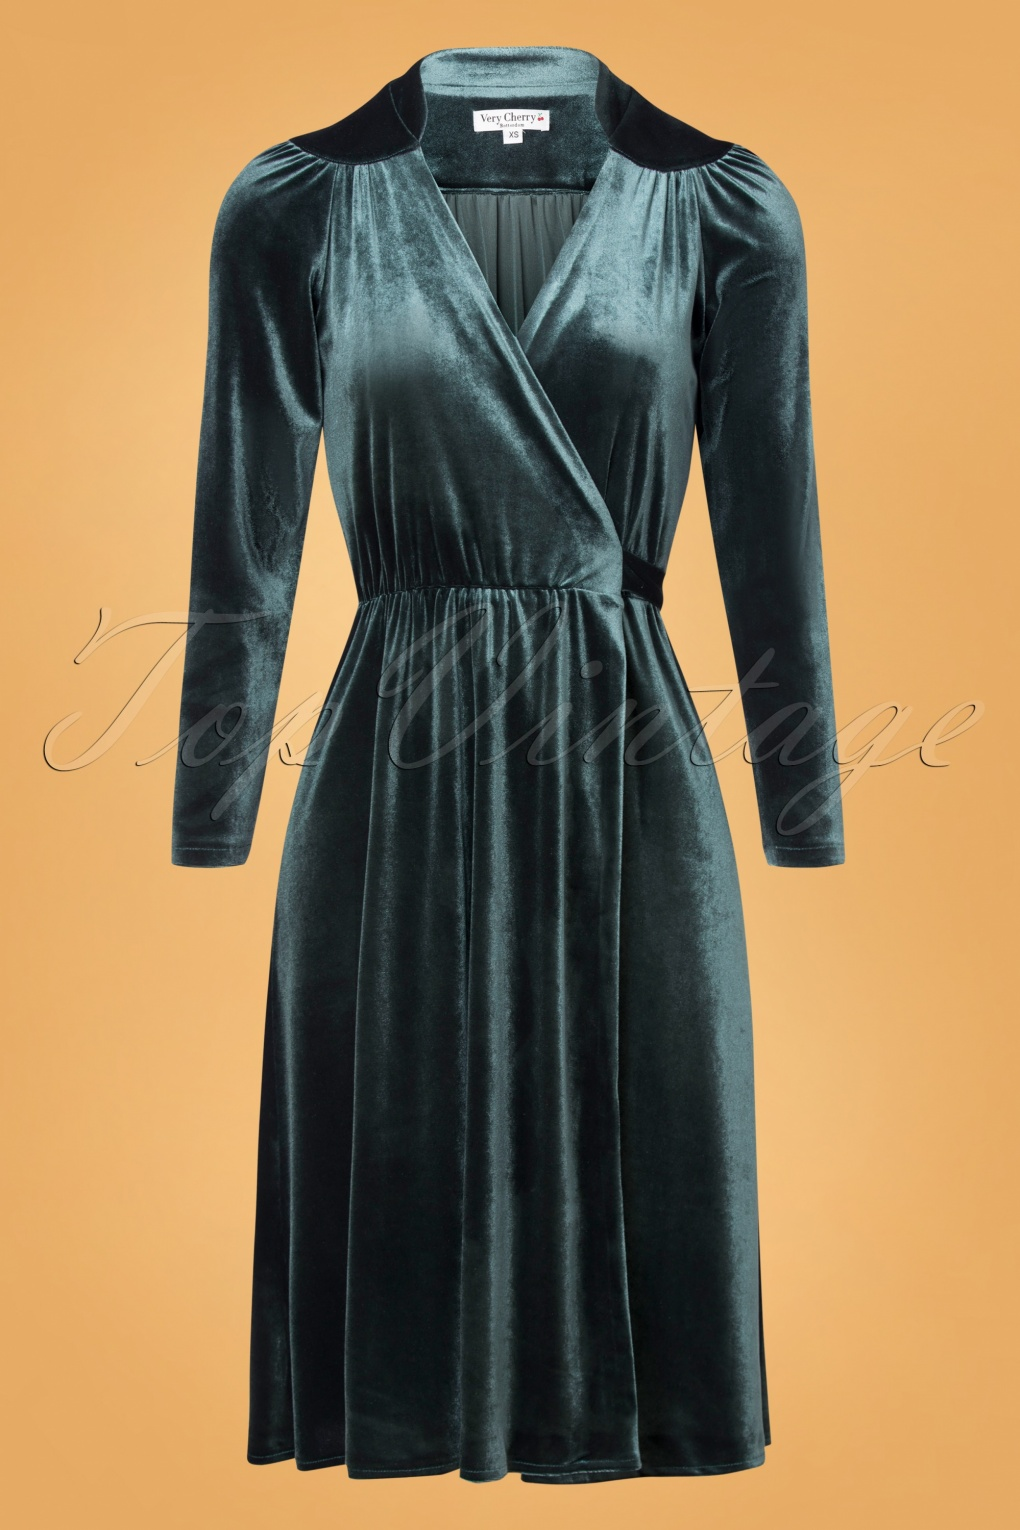 70s Prom, Formal, Evening, Party Dresses 40s Leaf Velvet Wrap Dress in Bluegris £128.84 AT vintagedancer.com